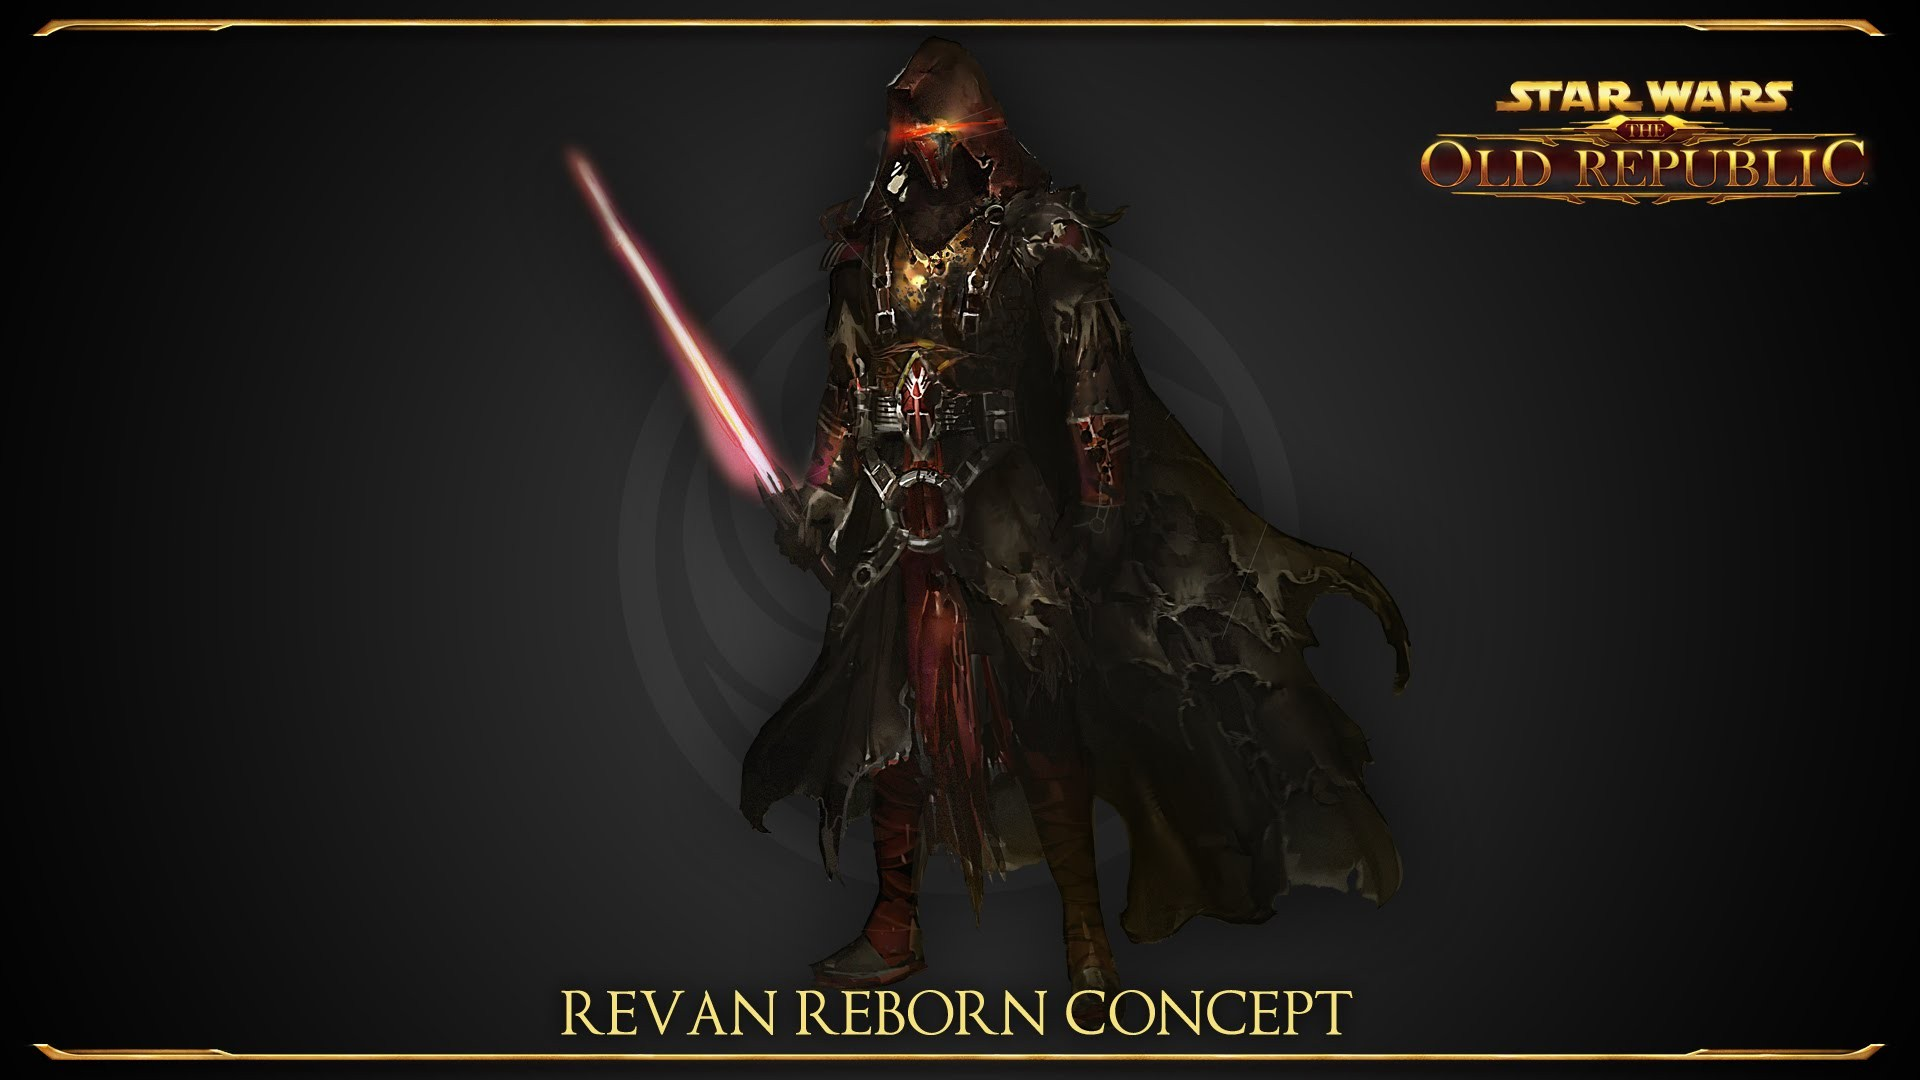 darth revan wallpaper 1920x1080 WTG2006588